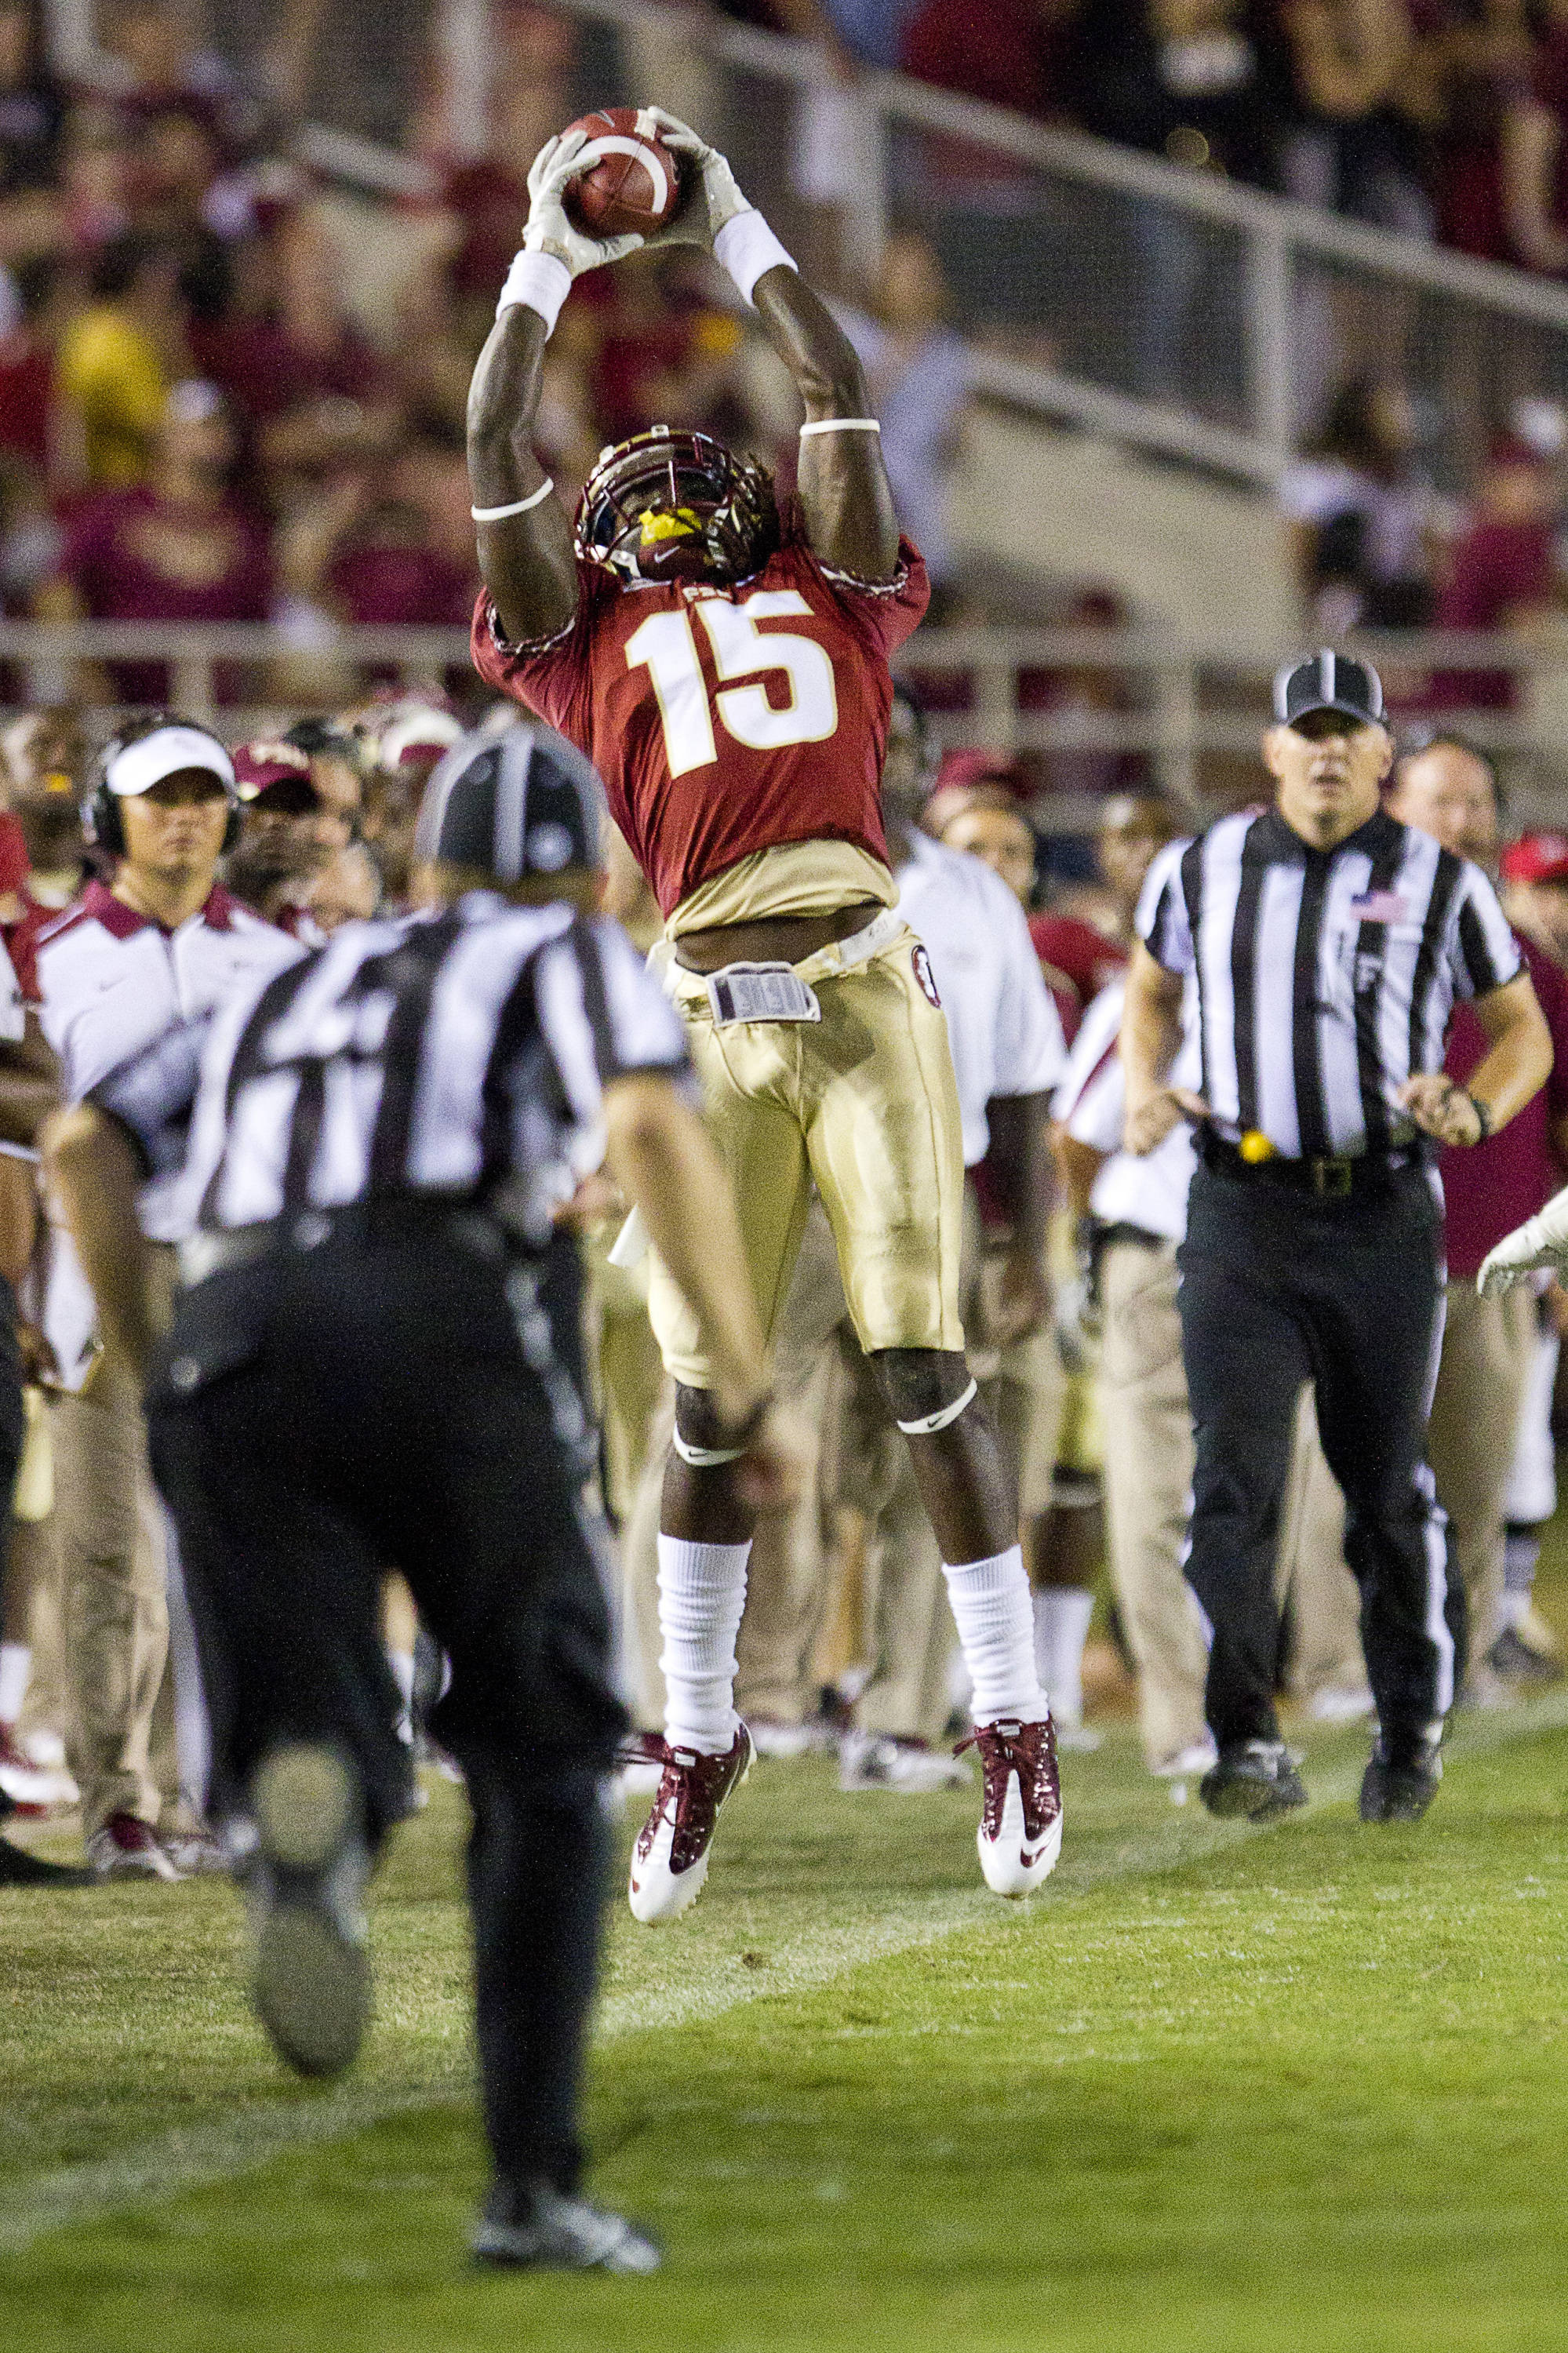 Greg Dent (15) leaps to make a catch, but falls out of bounds during the game against Oklahoma on September 17, 2011.